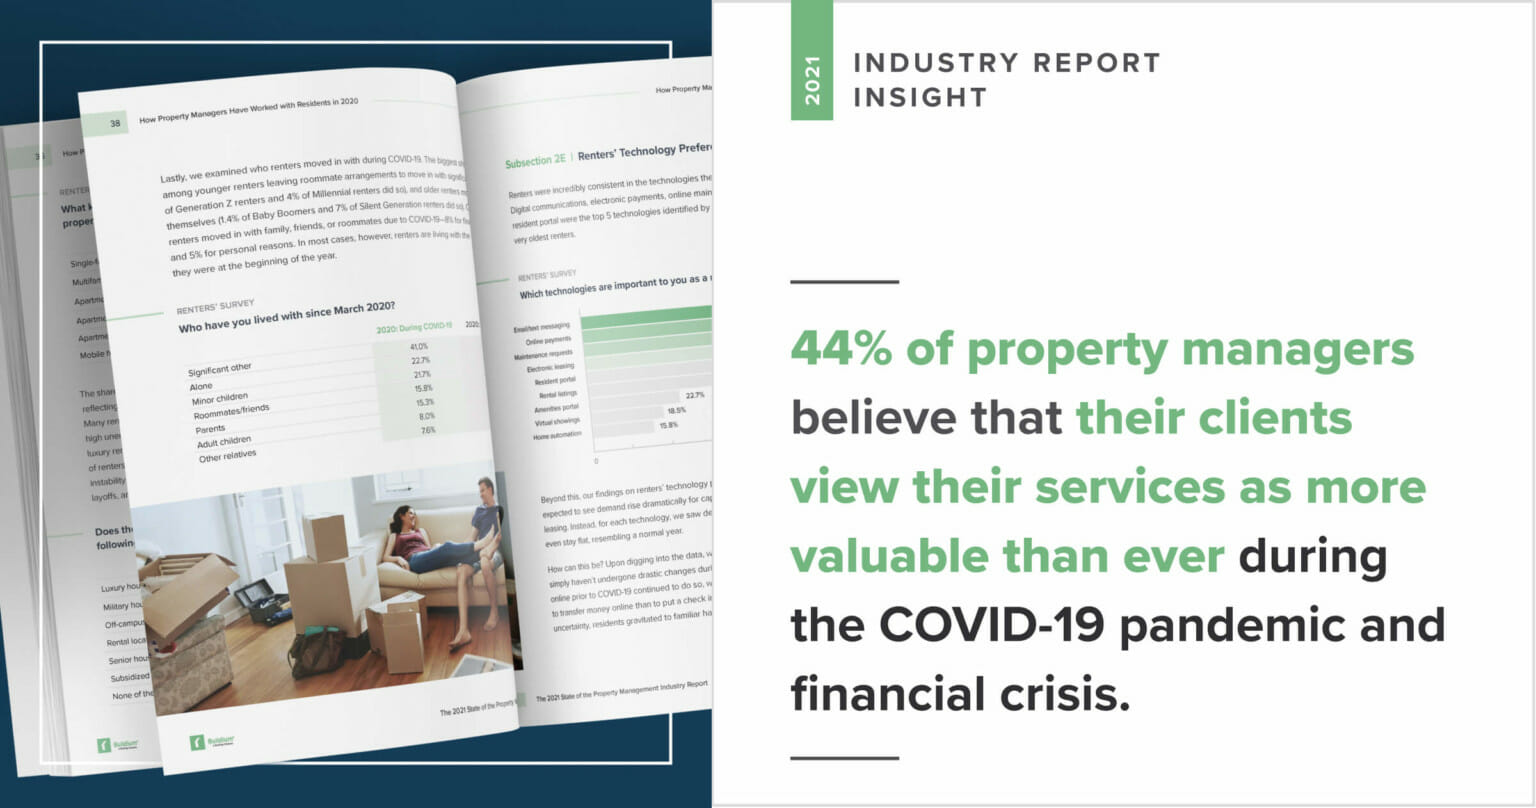 44% of property managers believe that their clients view their services as more valuable than before the Covid_19 pandemic and financial crisis